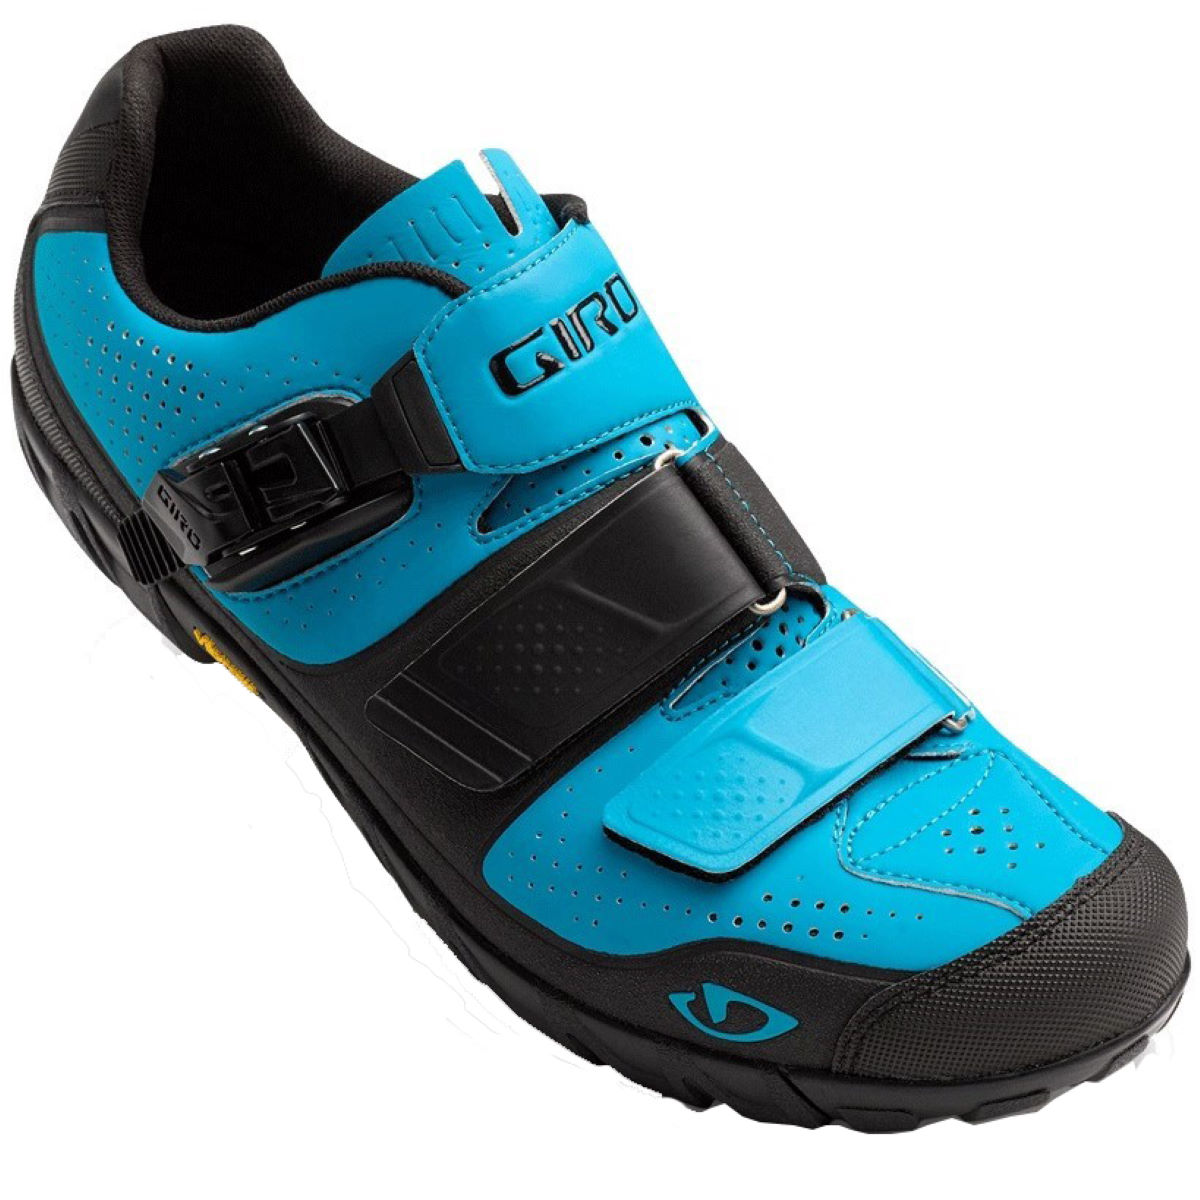 Chaussures VTT Giro Terraduro - 41 Blue Jewel/Black